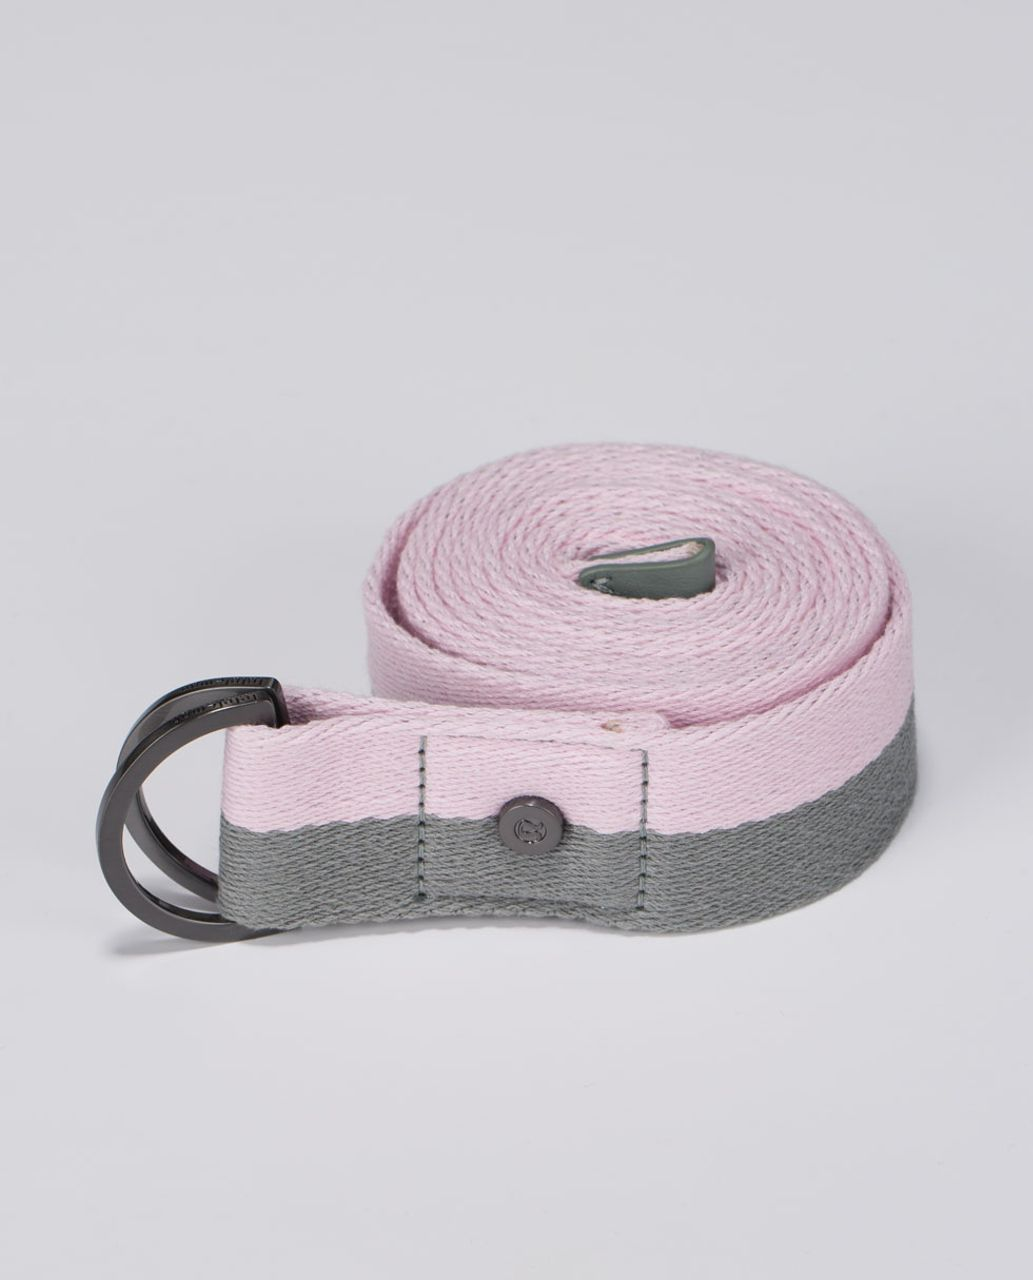 Lululemon No Limits Stretching Strap Earl Grey Barely Pink